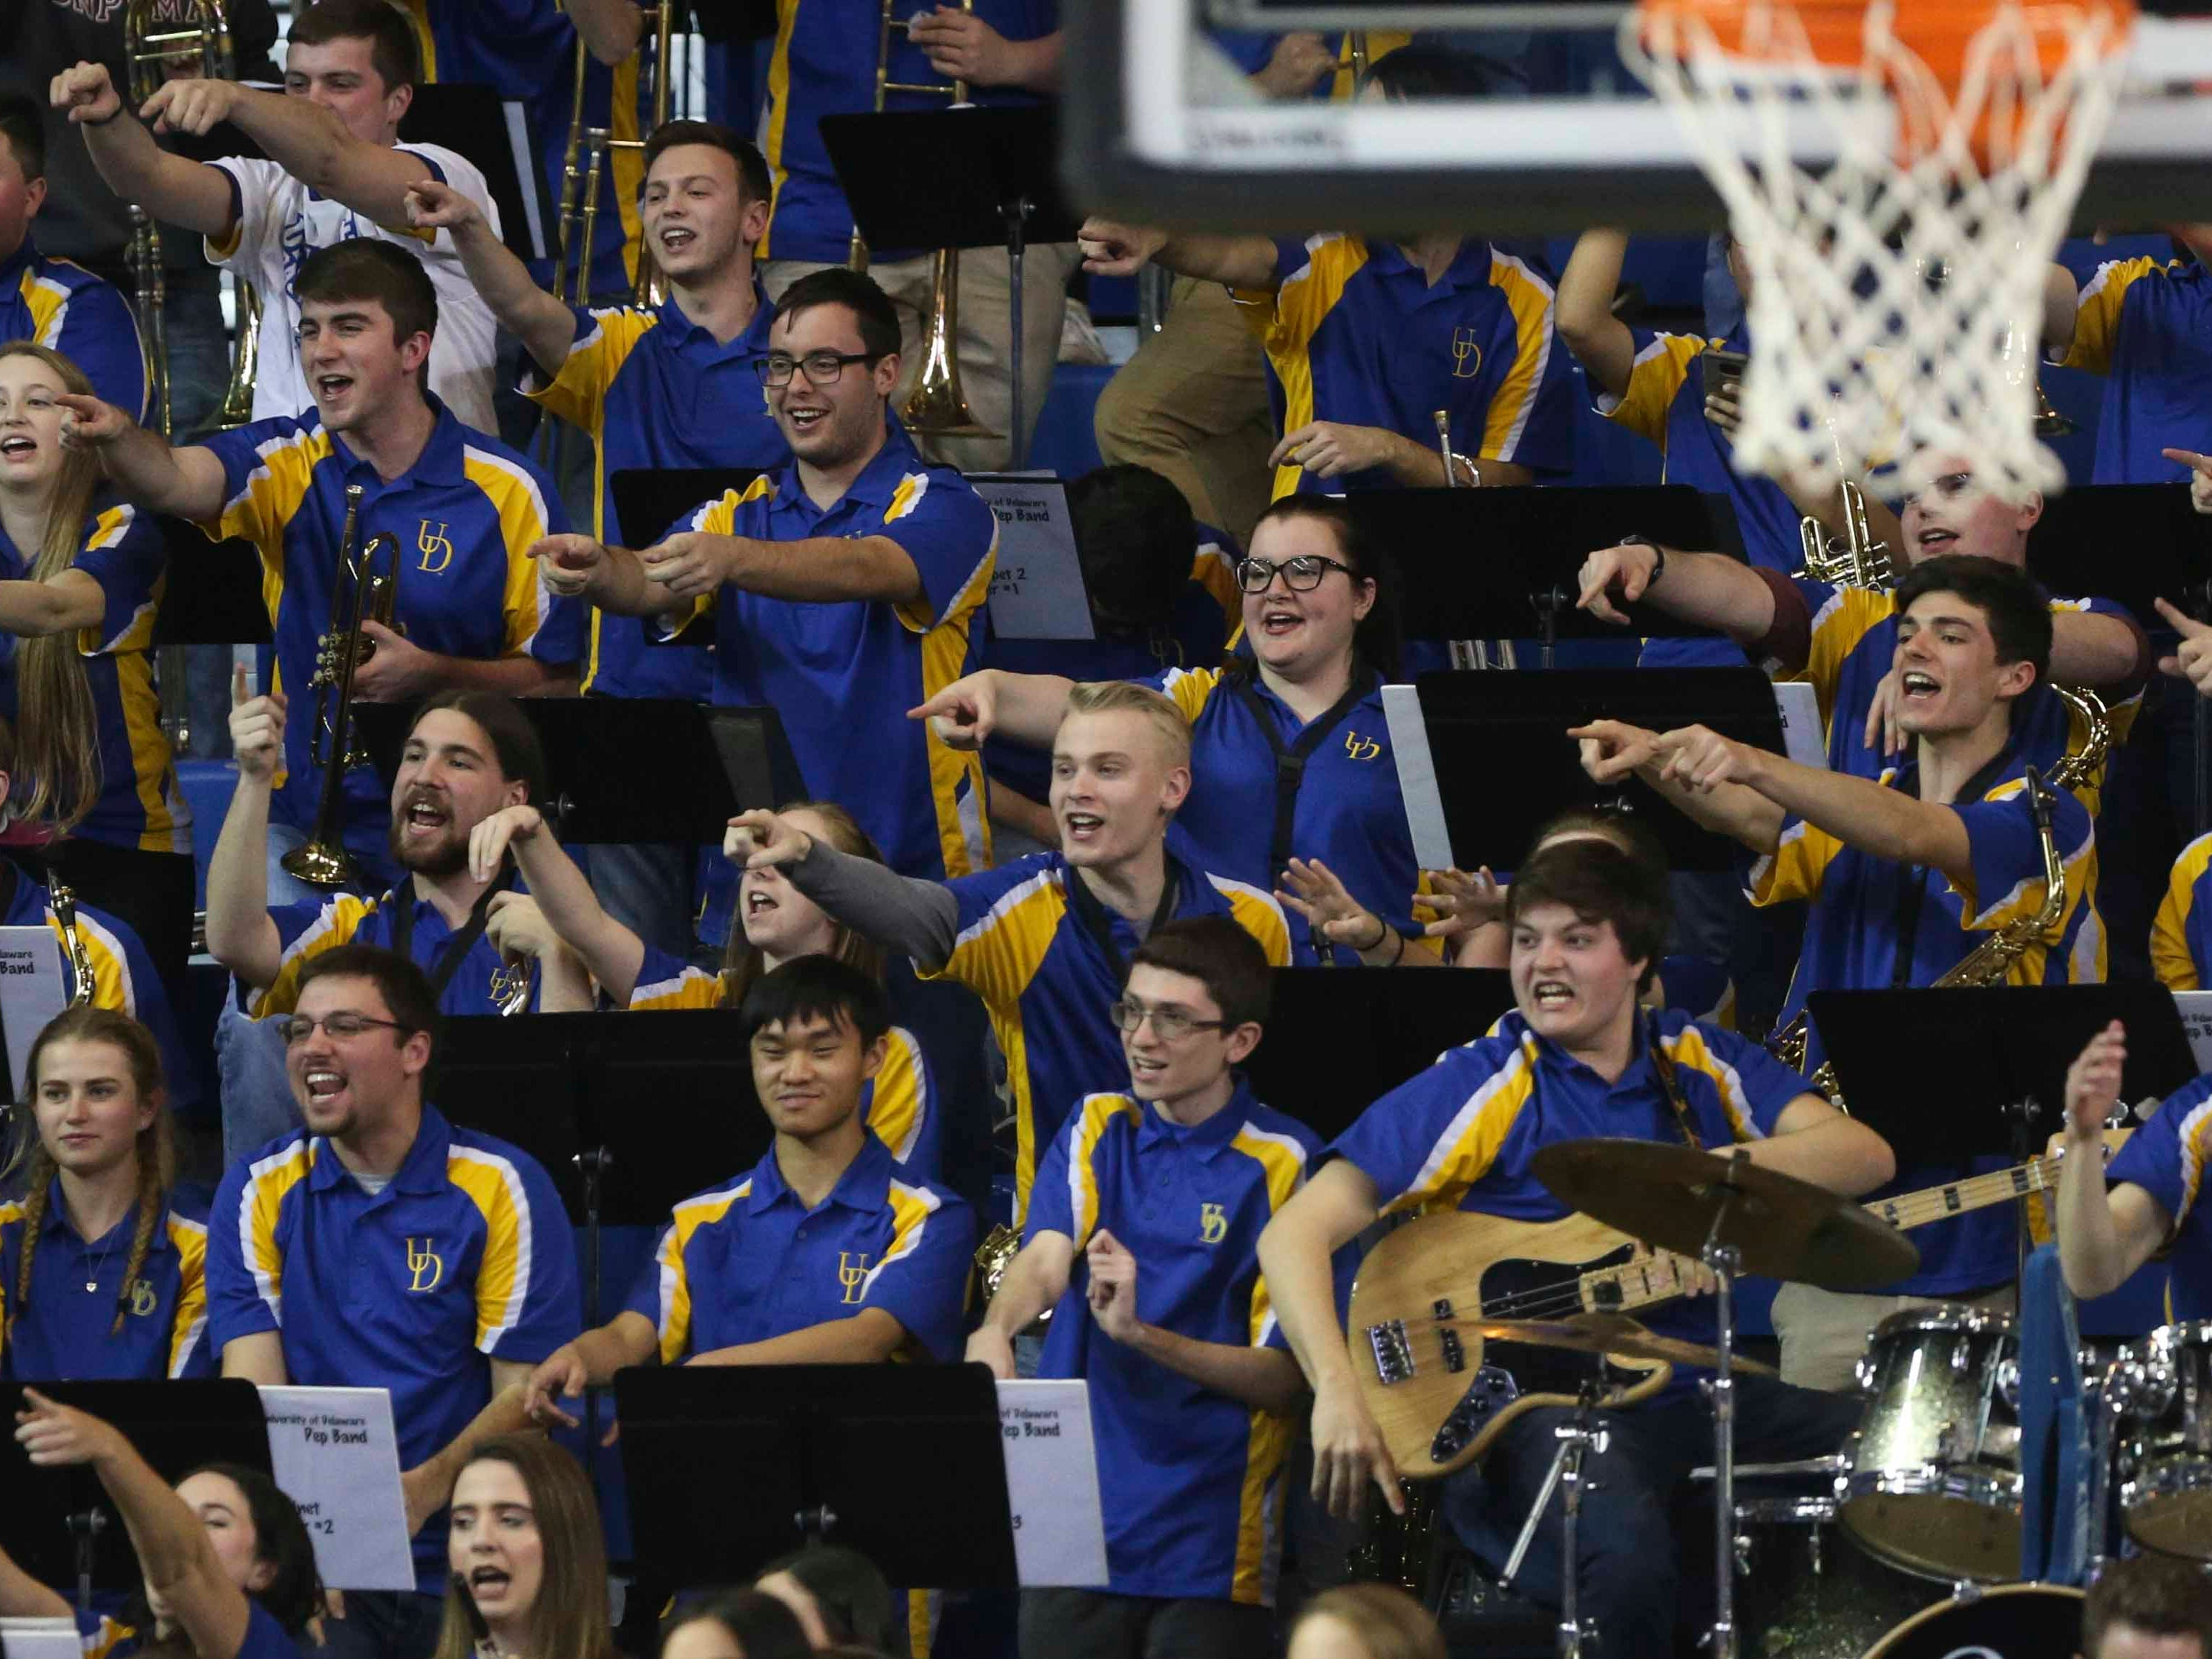 The Delaware band enjoys 'escorting' a UNC-Wilmington player to the bench after he fouled out in the second half of Delaware's 70-66 win at the Bob Carpenter Center Saturday.